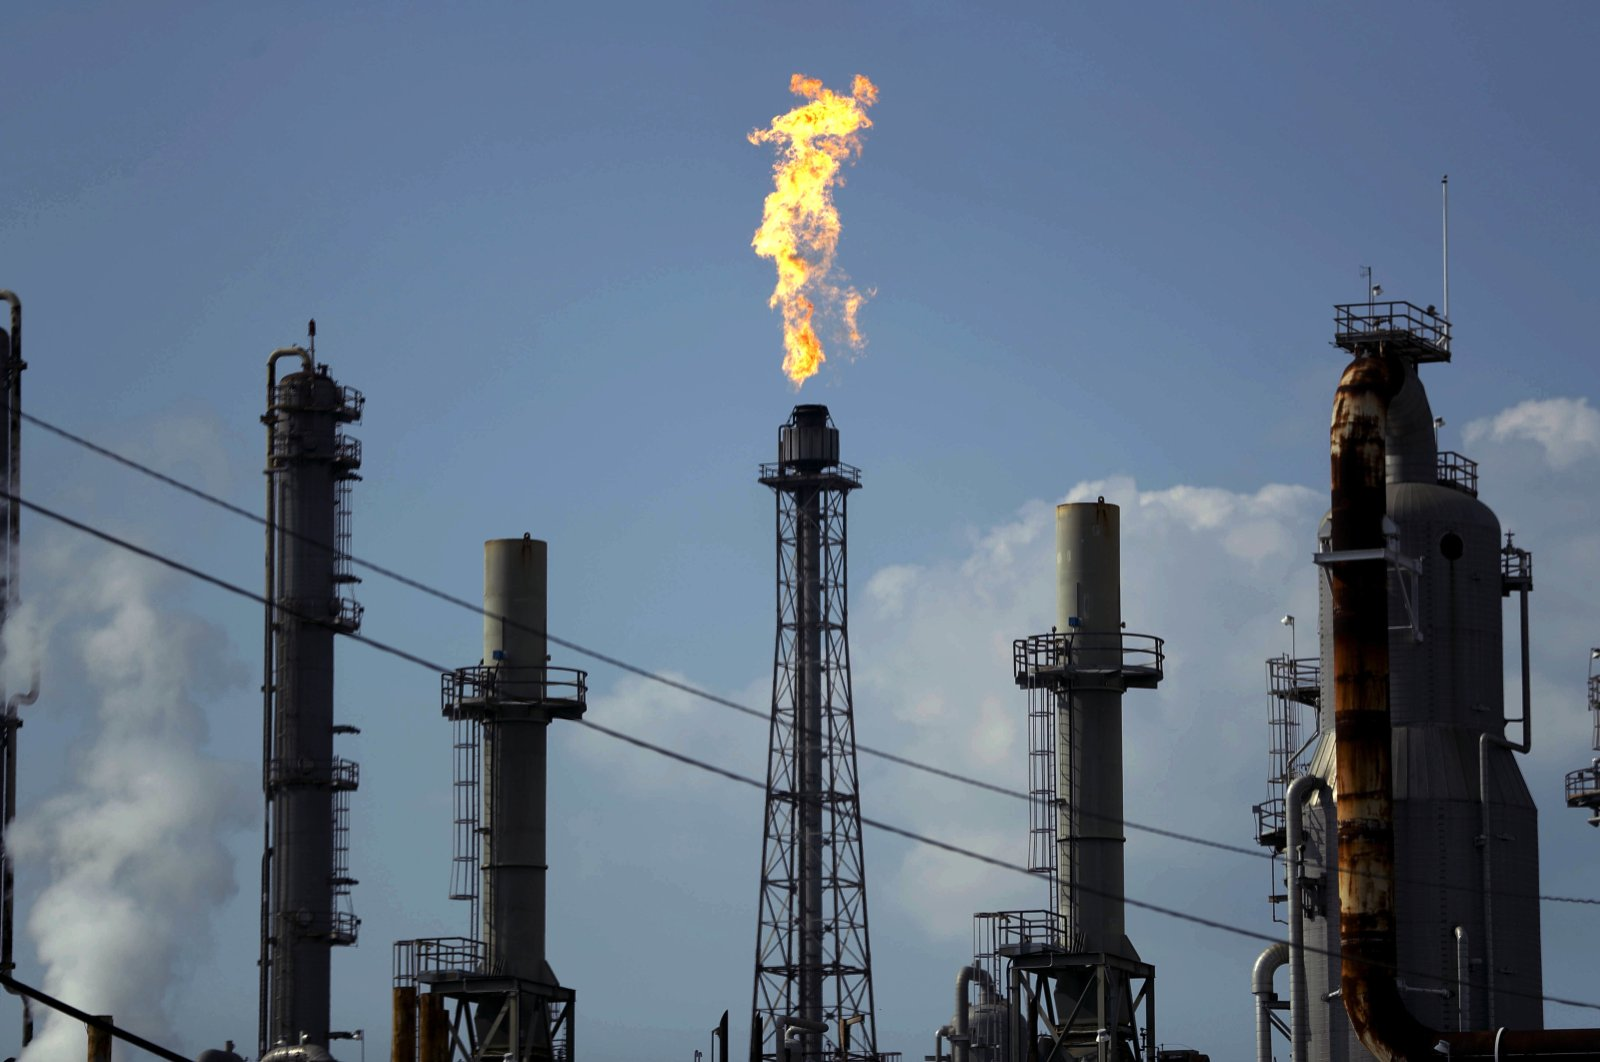 A flame burns at the Shell Deer Park oil refinery in Deer Park, Texas, Aug. 31, 2017. With the viral outbreak spreading to more countries, the price of oil has dropped precipitously as global demand weakens even further. That has sent shares tumbling for oil giants like Exxon and Chevron while smaller producers with idling rigs continue to slash jobs. (AP Photo)